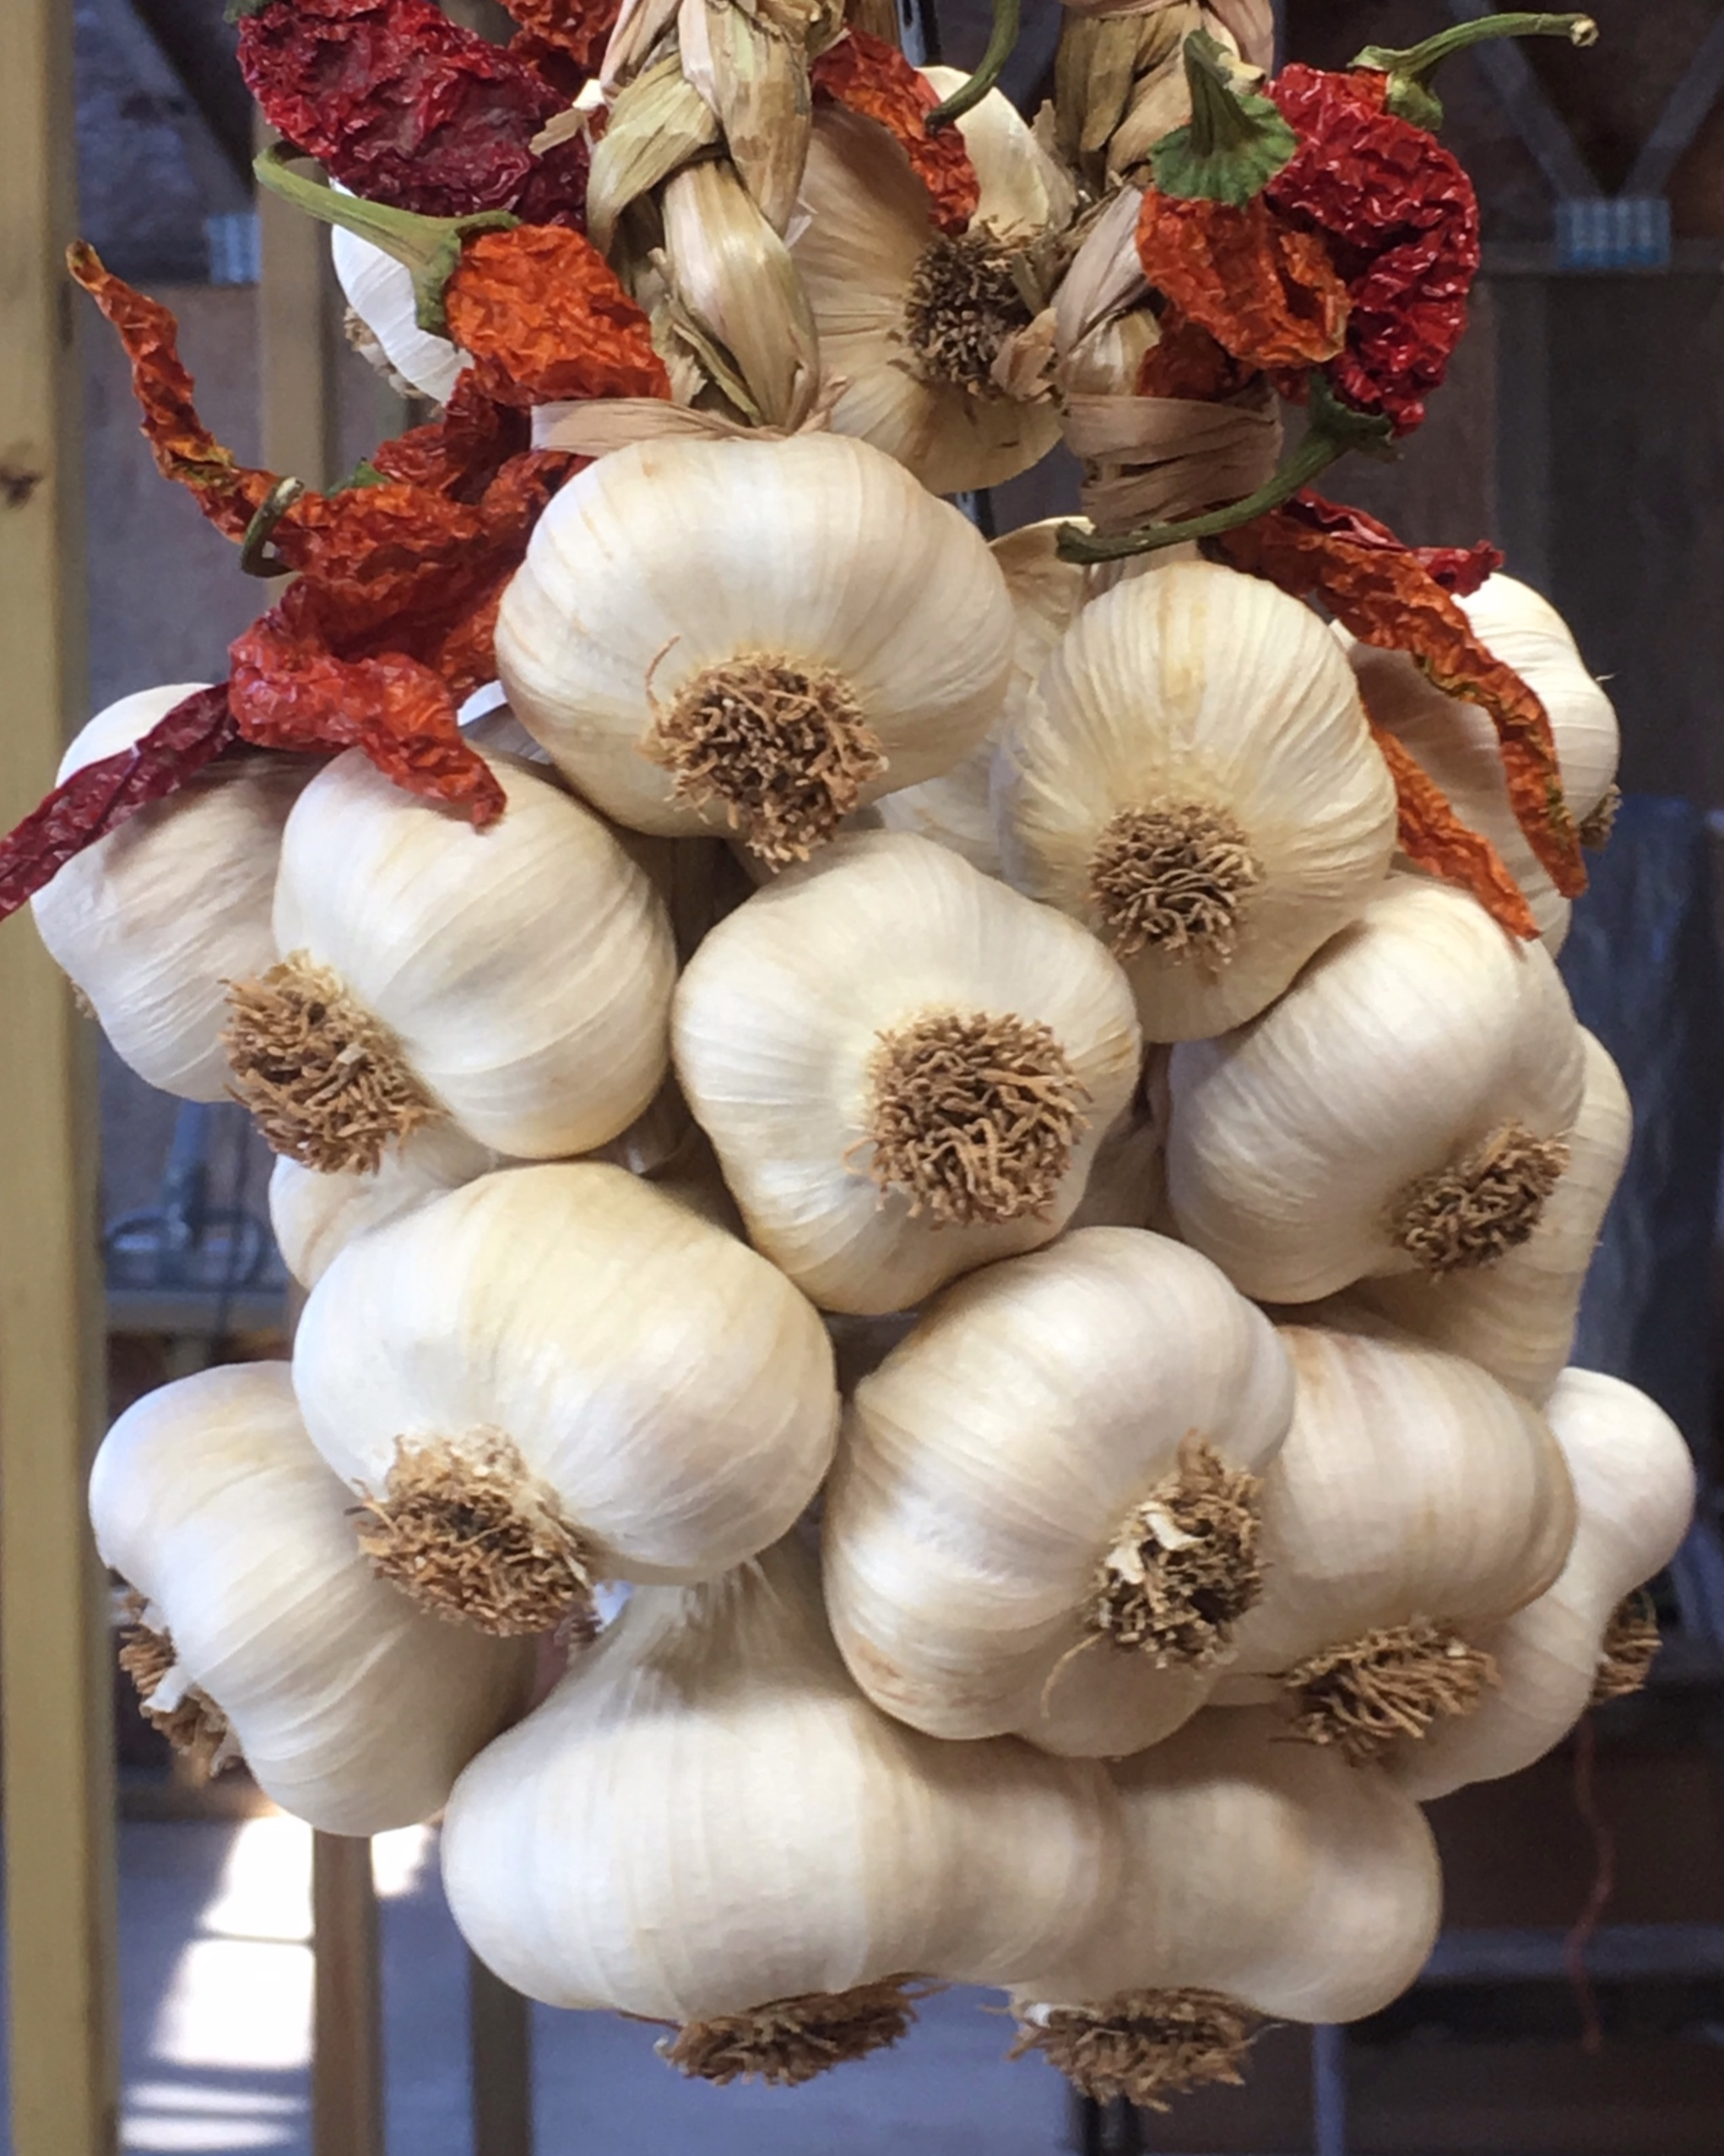 - Since 2015, we've sold our garlic at local farmers' markets. Our customers have come to include restaurants, co-ops and folks in other states. We offer 8 to 12 different varieties of organically grown garlic each year. Our goal is to provide our customers with healthy, great tasting garlic varieties that enhance their family recipes.The response to our efforts has been awesome. So much so, we began offering a monthly garlic only CSA in 2017. In addition to cured garlic bulbs and based on the growth cycle, we also offer green garlic, garlic scapes, braids, dehydrated garlic chips and powder.